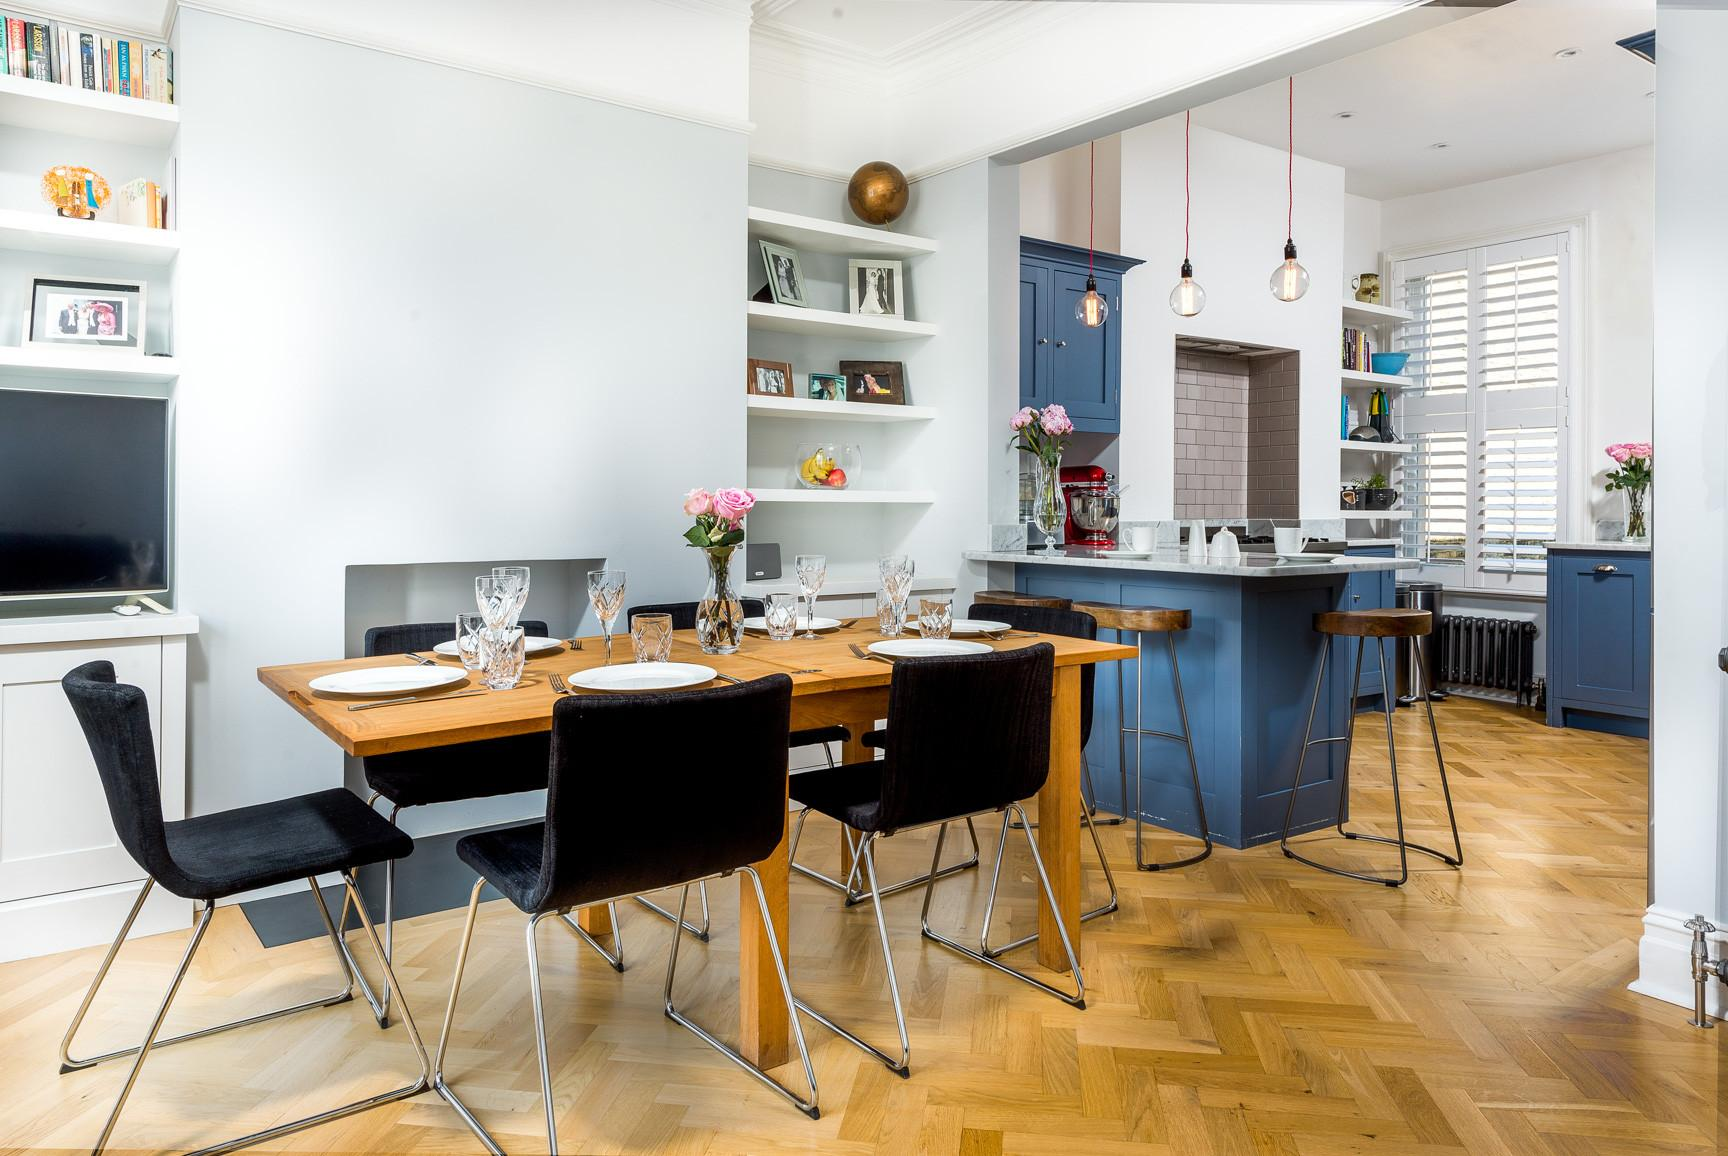 Property Image 2 - Enchanting Eclectic Family Home by Clapham Common